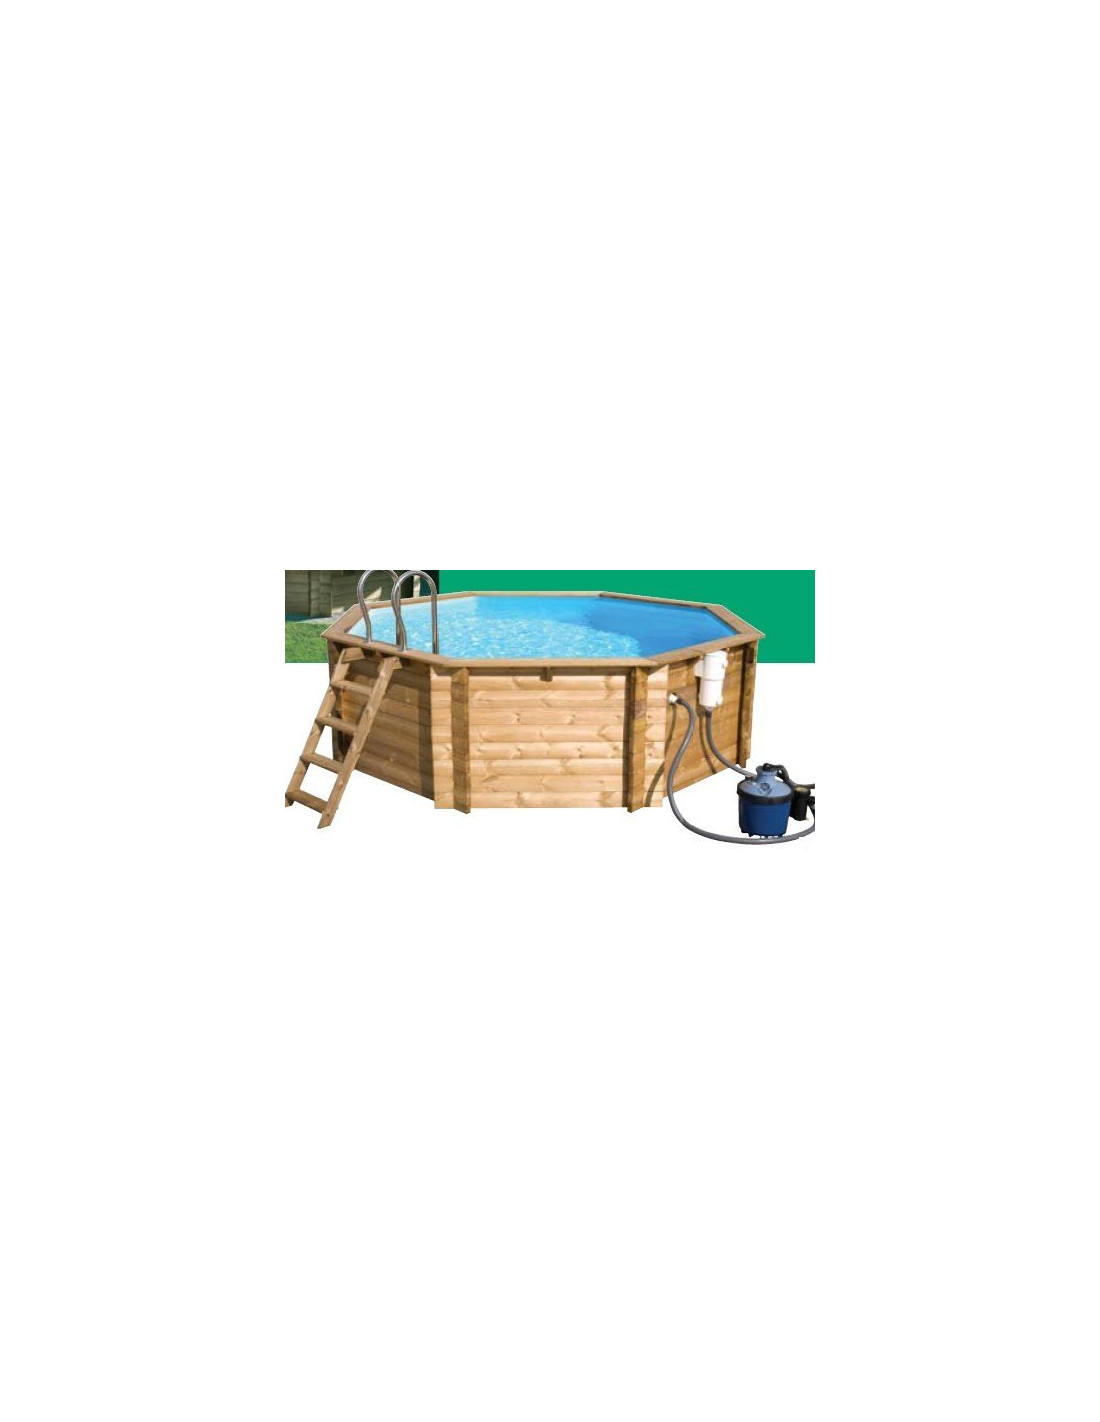 piscine tropic bois 4 14m x 1 20m home piscine. Black Bedroom Furniture Sets. Home Design Ideas